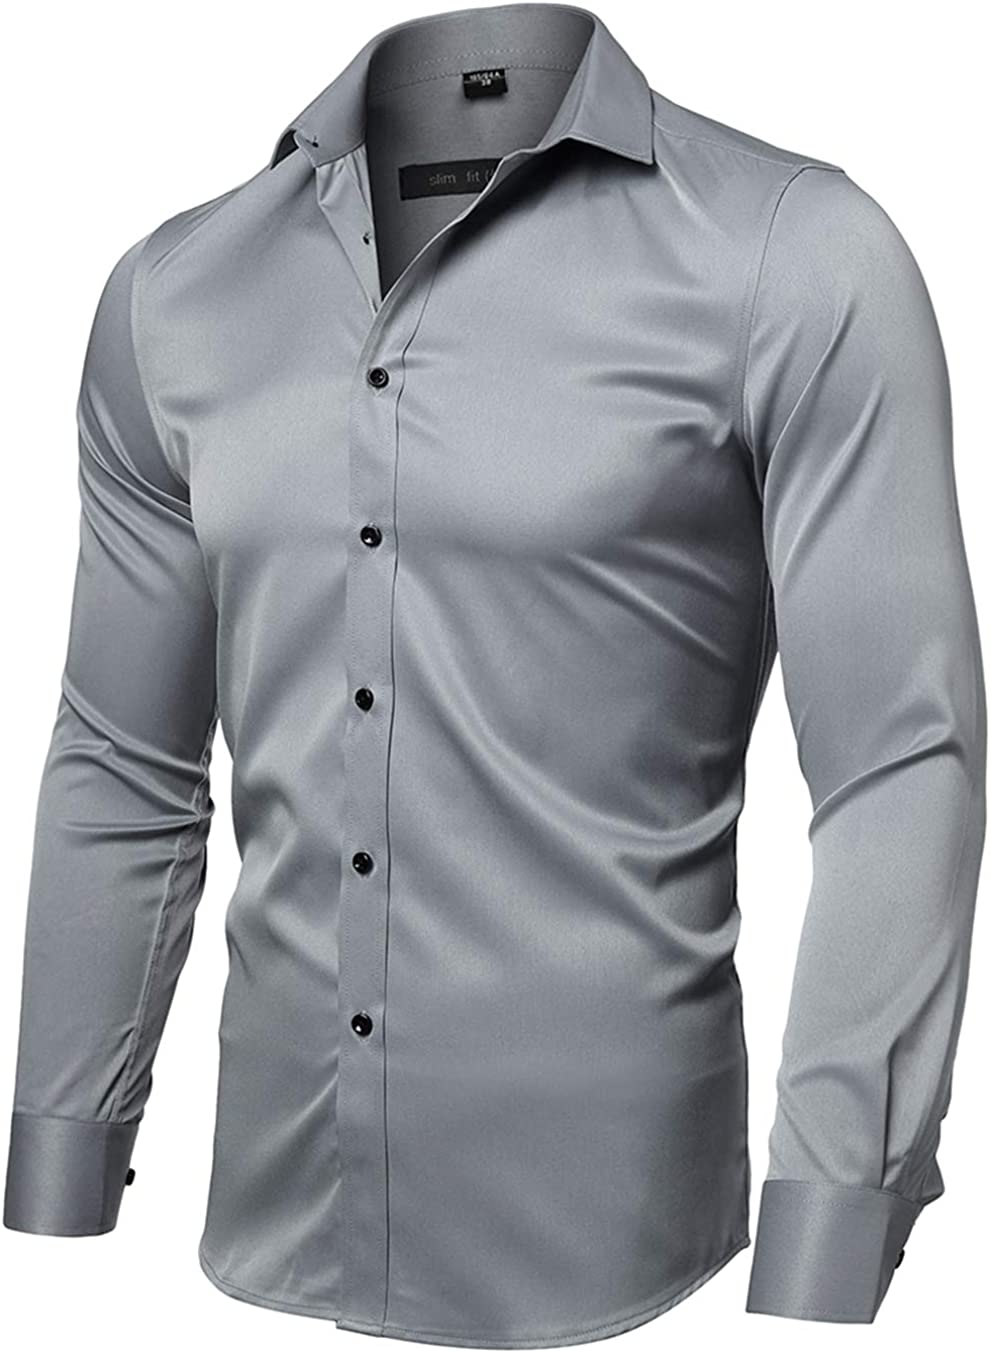 FLY HAWK Outlet sale feature Mens Finally resale start Dress Shirts Slim Elastic Bamboo Long Fit Sleeves